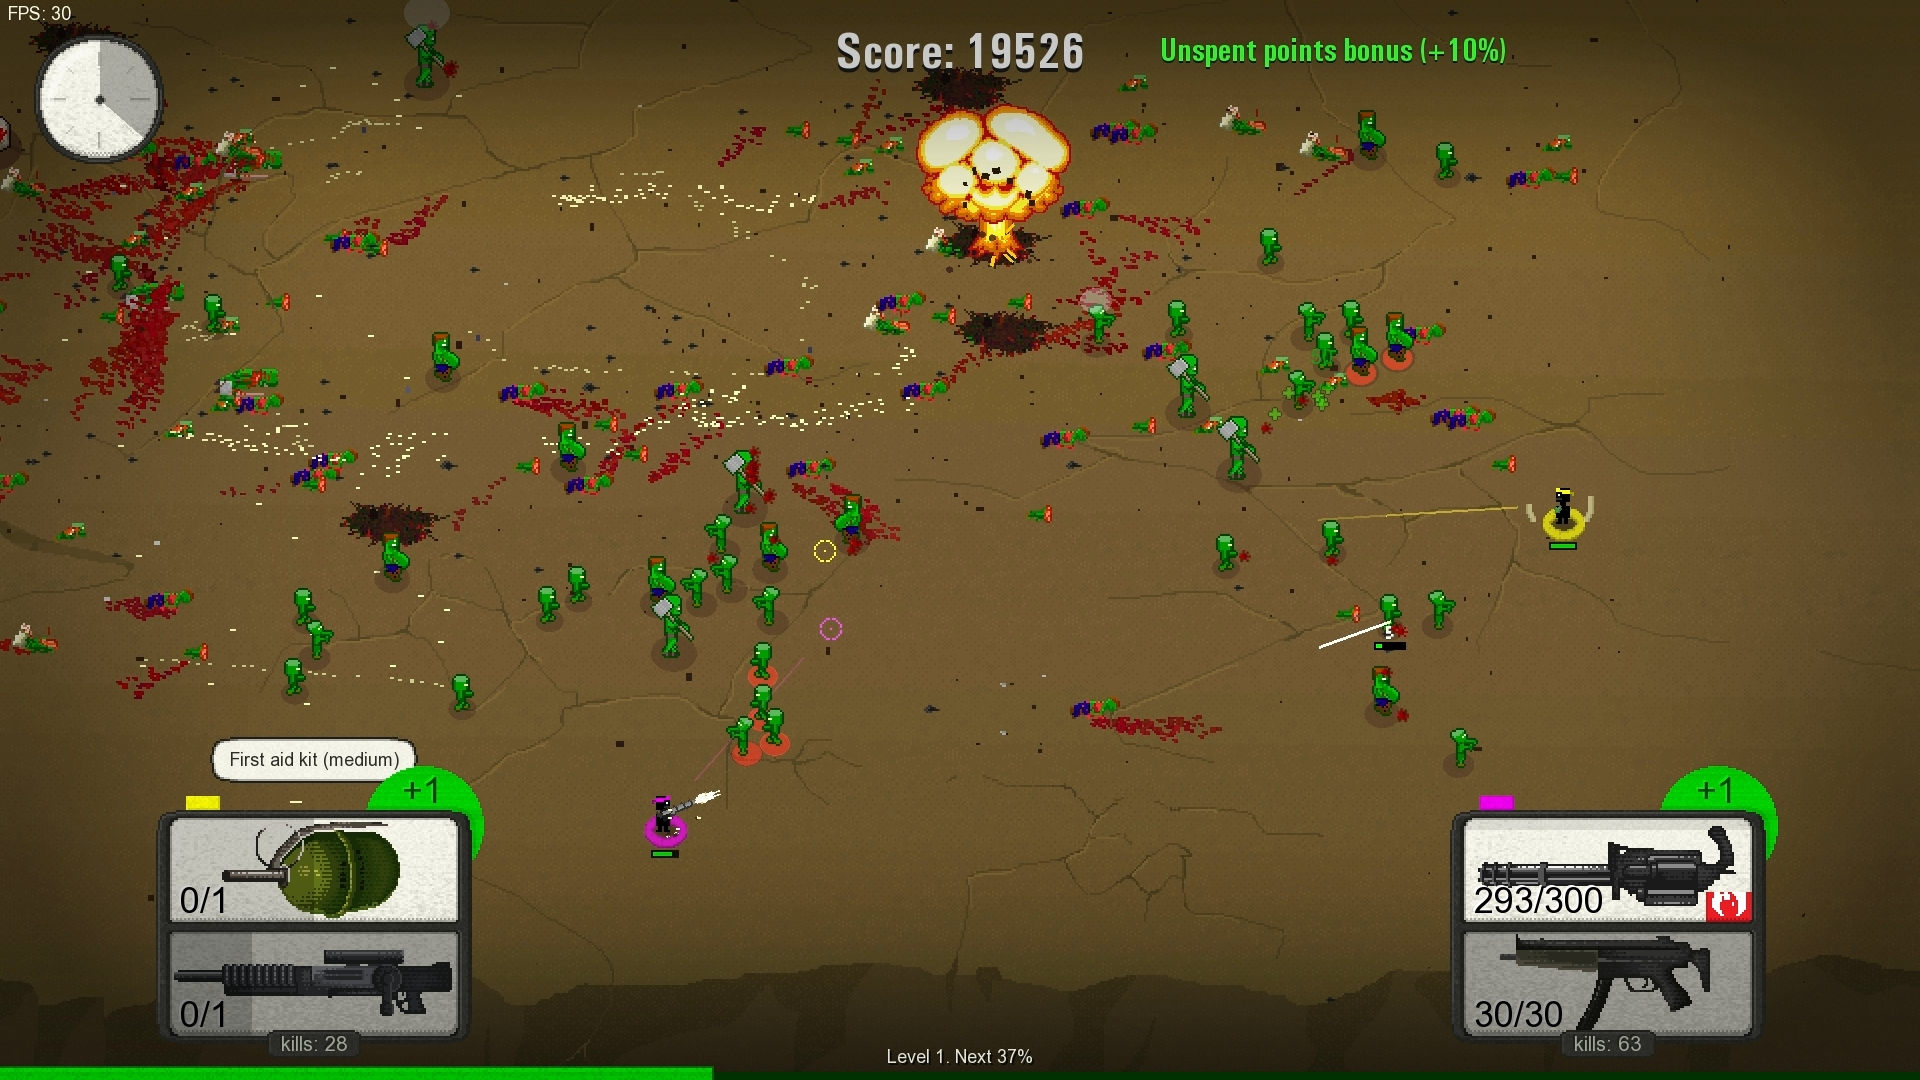 LazyGuysBundle –Steam game GraveRun by W@ Games for Windows available in the Bundle 23: Discovery deal for a cheap price.